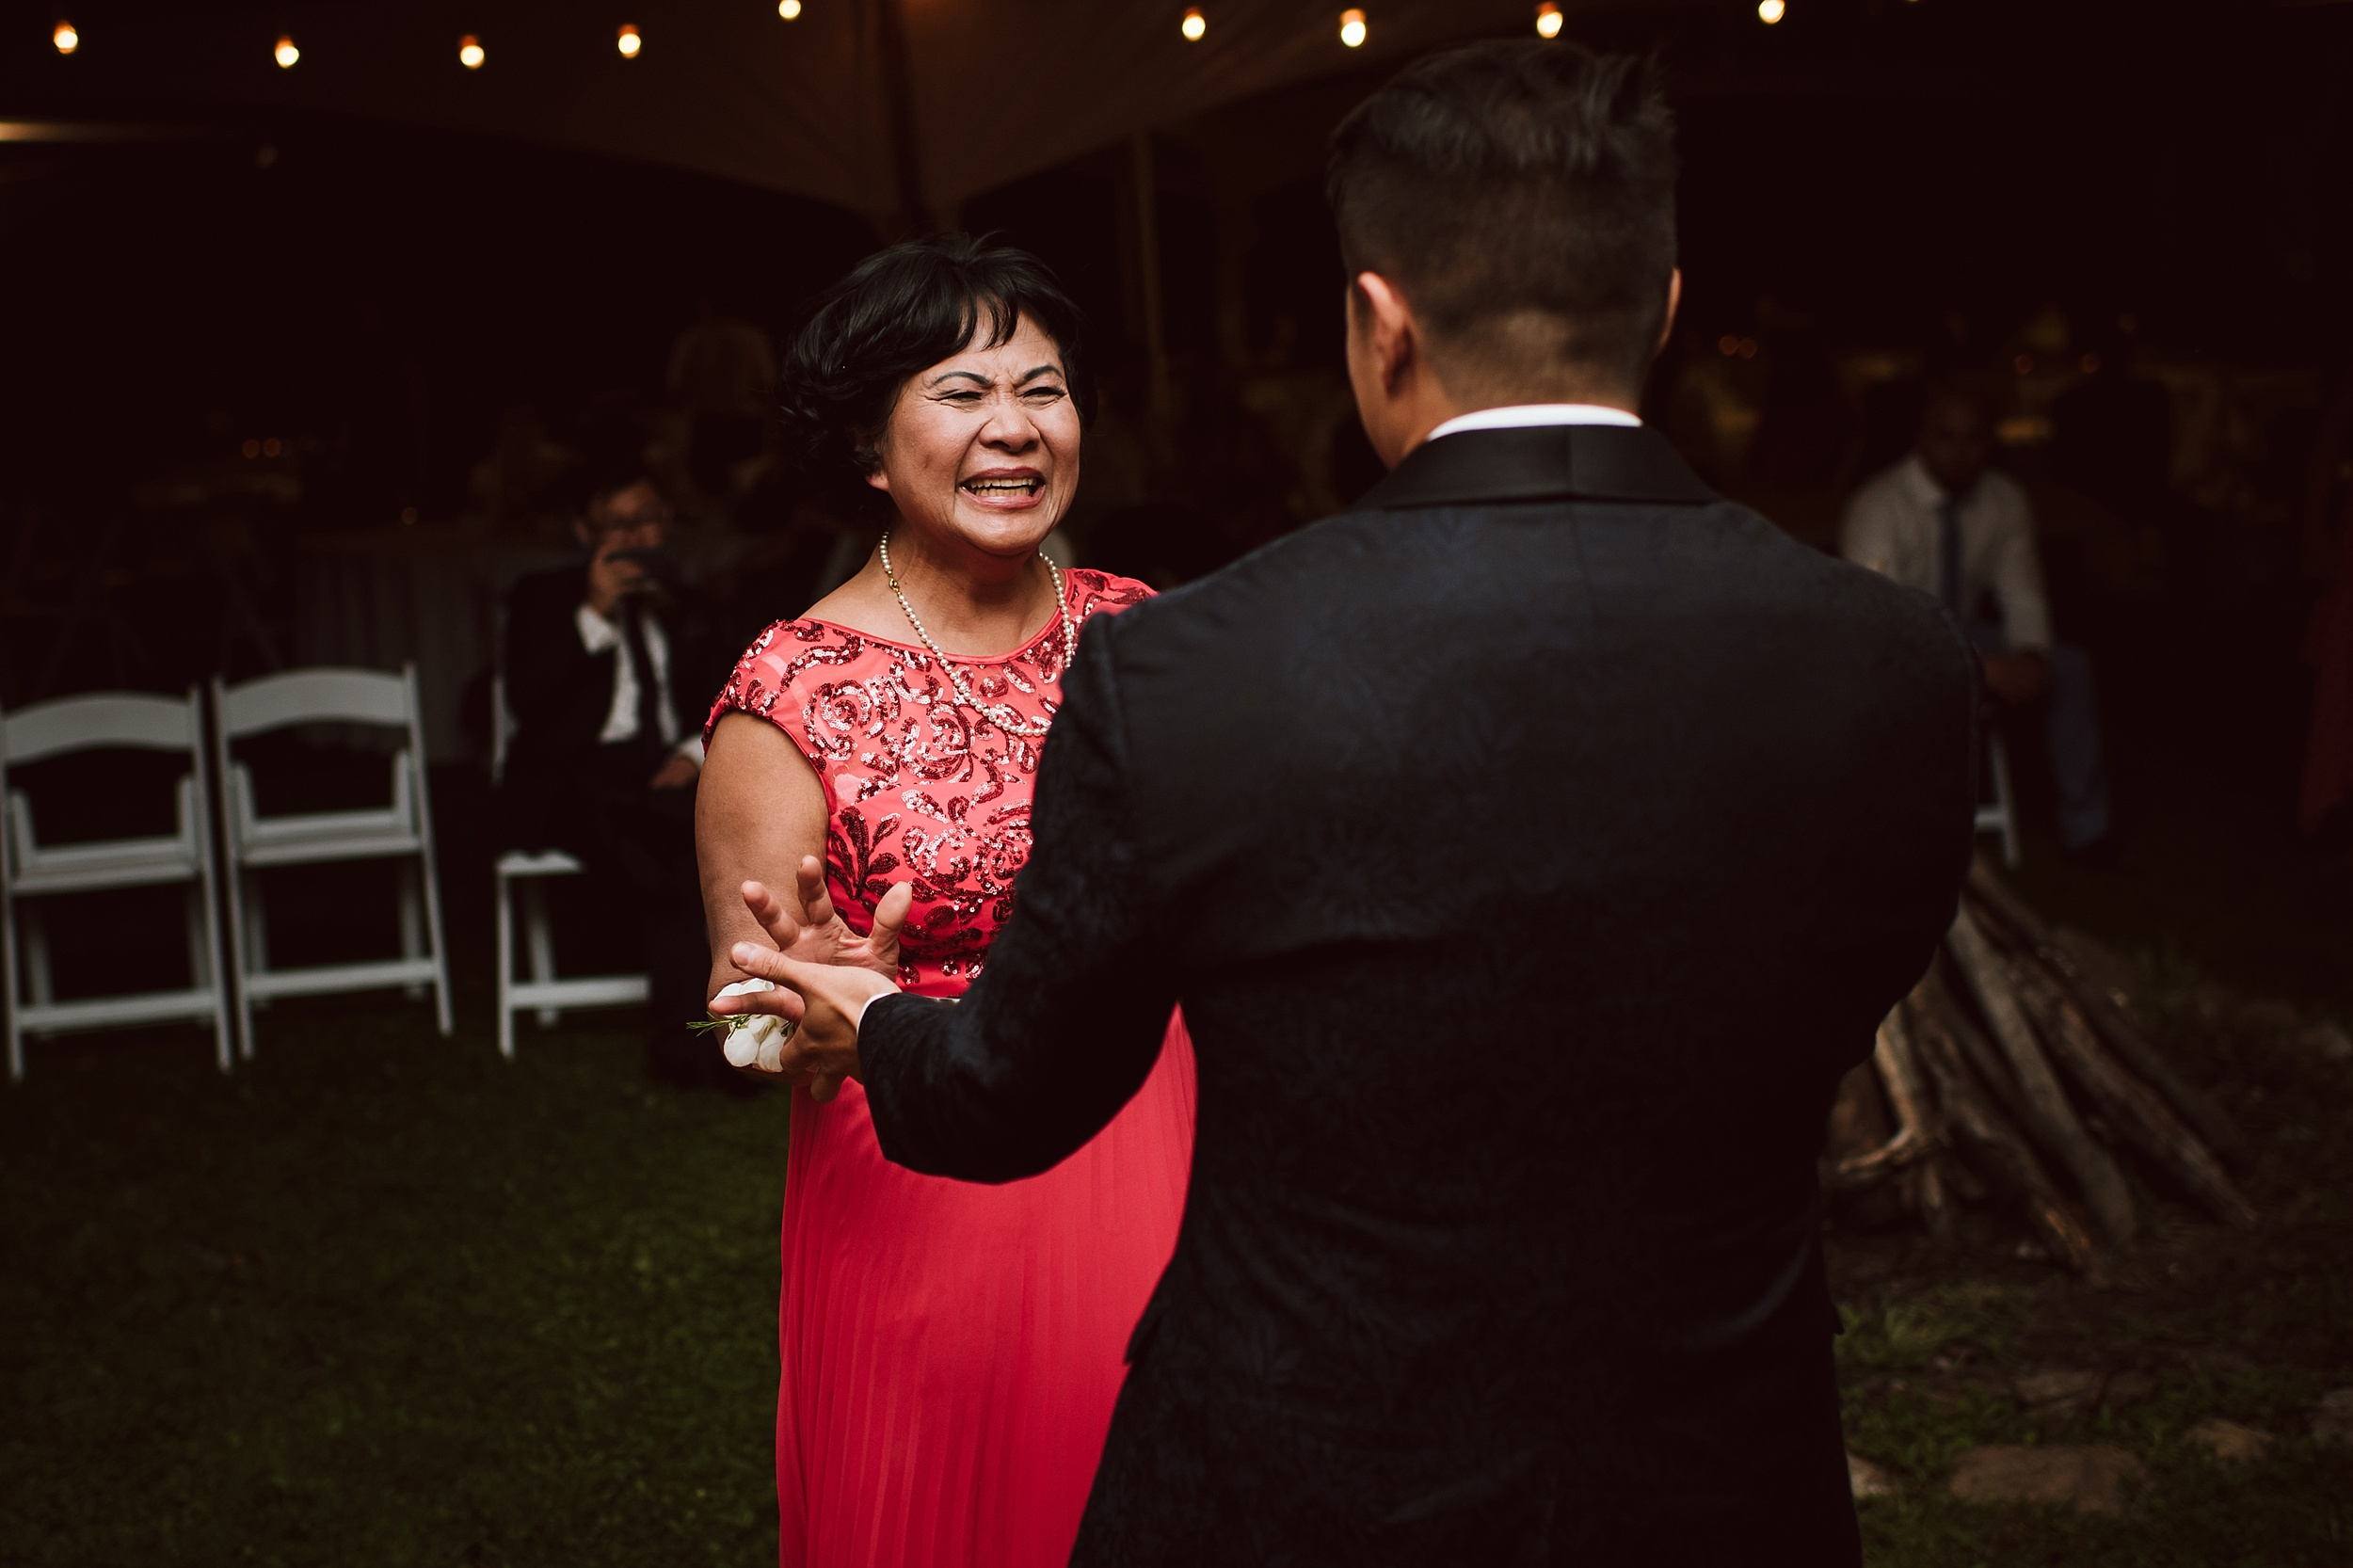 Hartman_Gallery_Mount_Albert_Toronto_Wedding_Photographer_0075.jpg